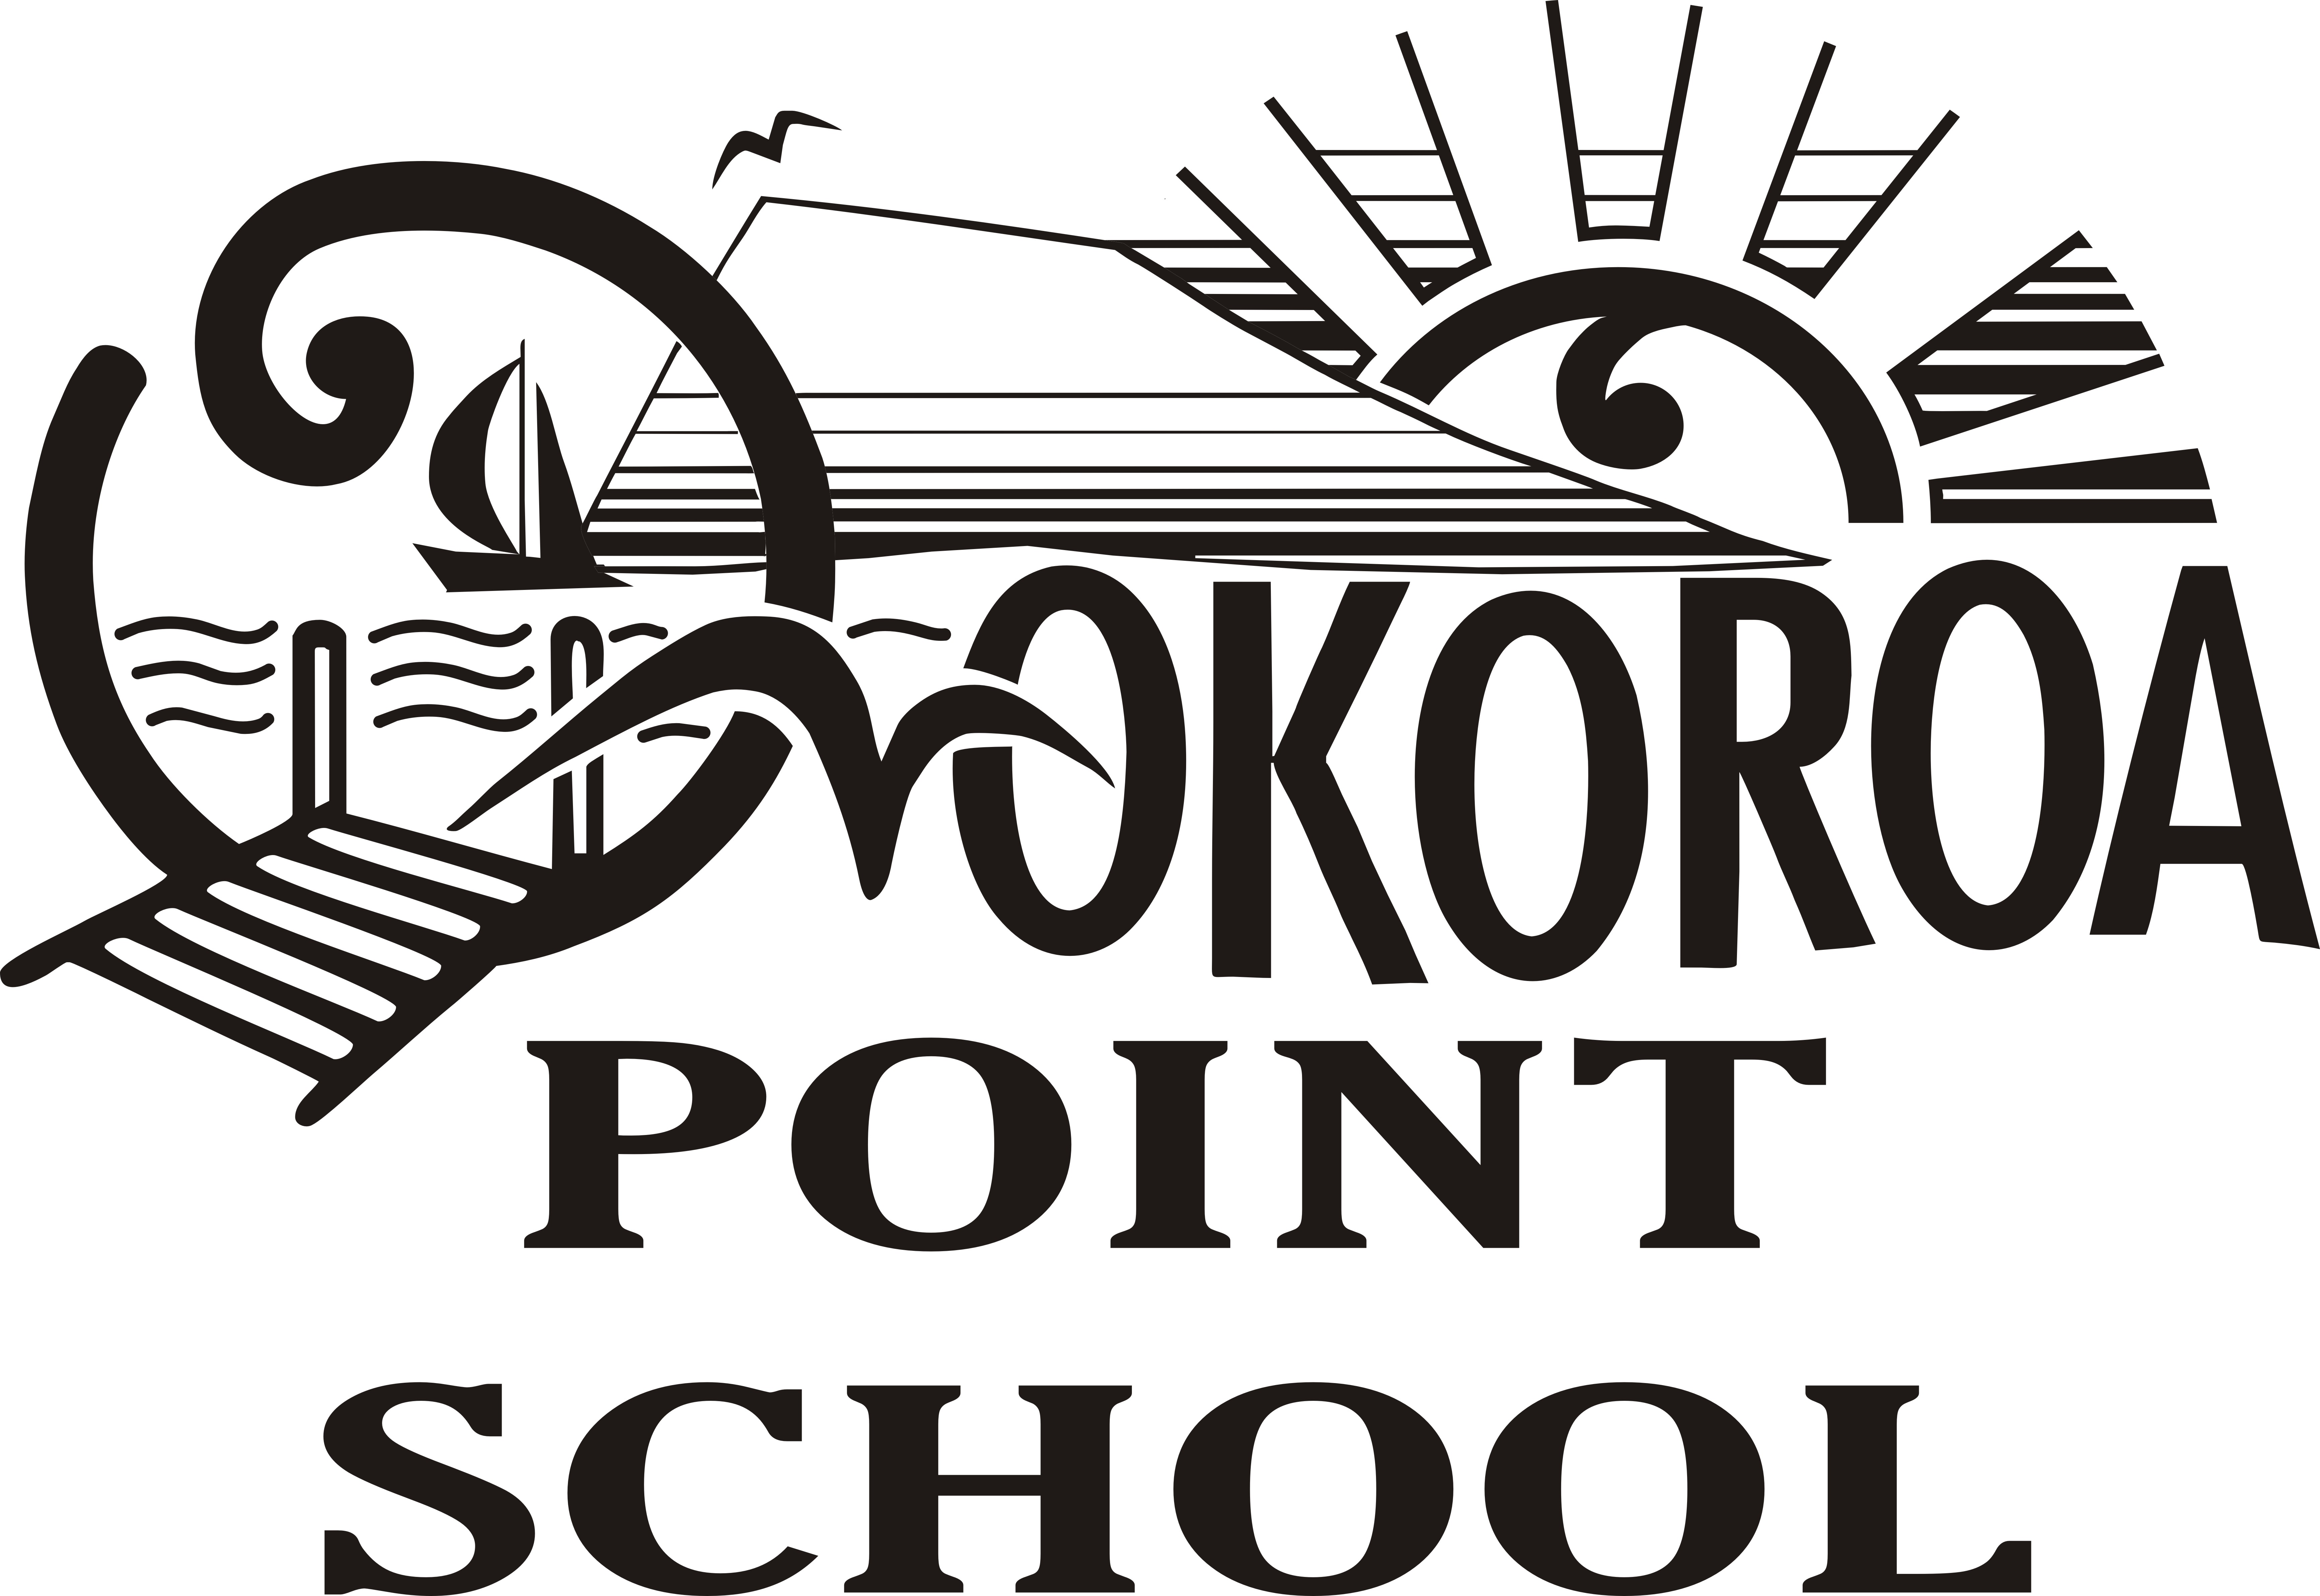 Omokoroa Point School